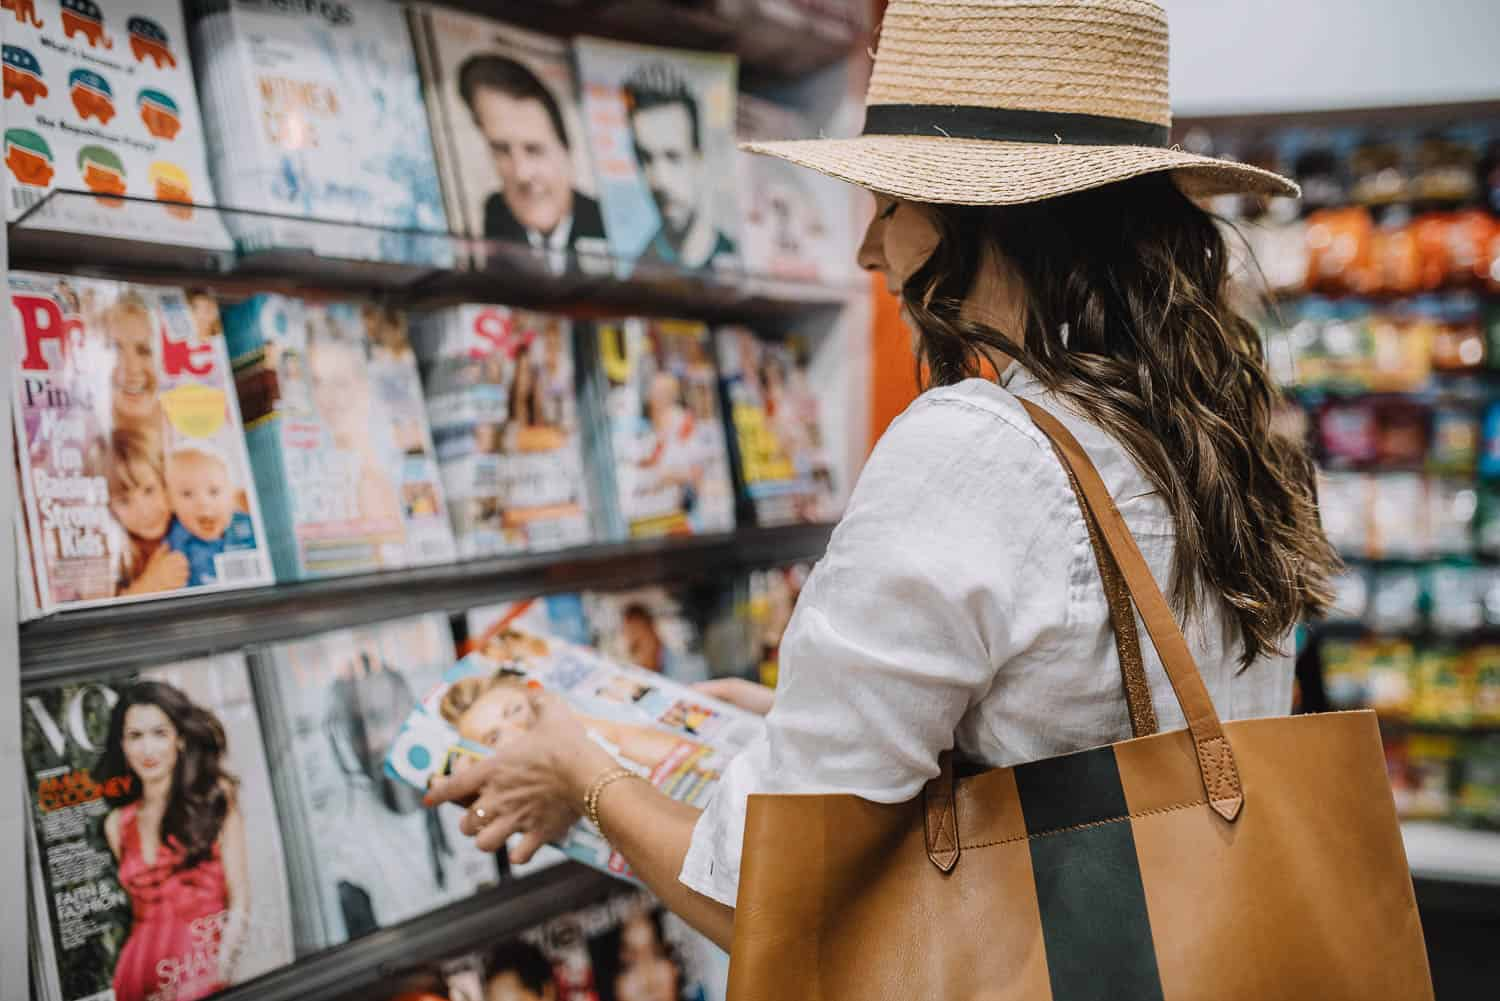 Jessica Camerata is wearing a Packable Mesa Straw Hat and The Transport Tote - Madewell